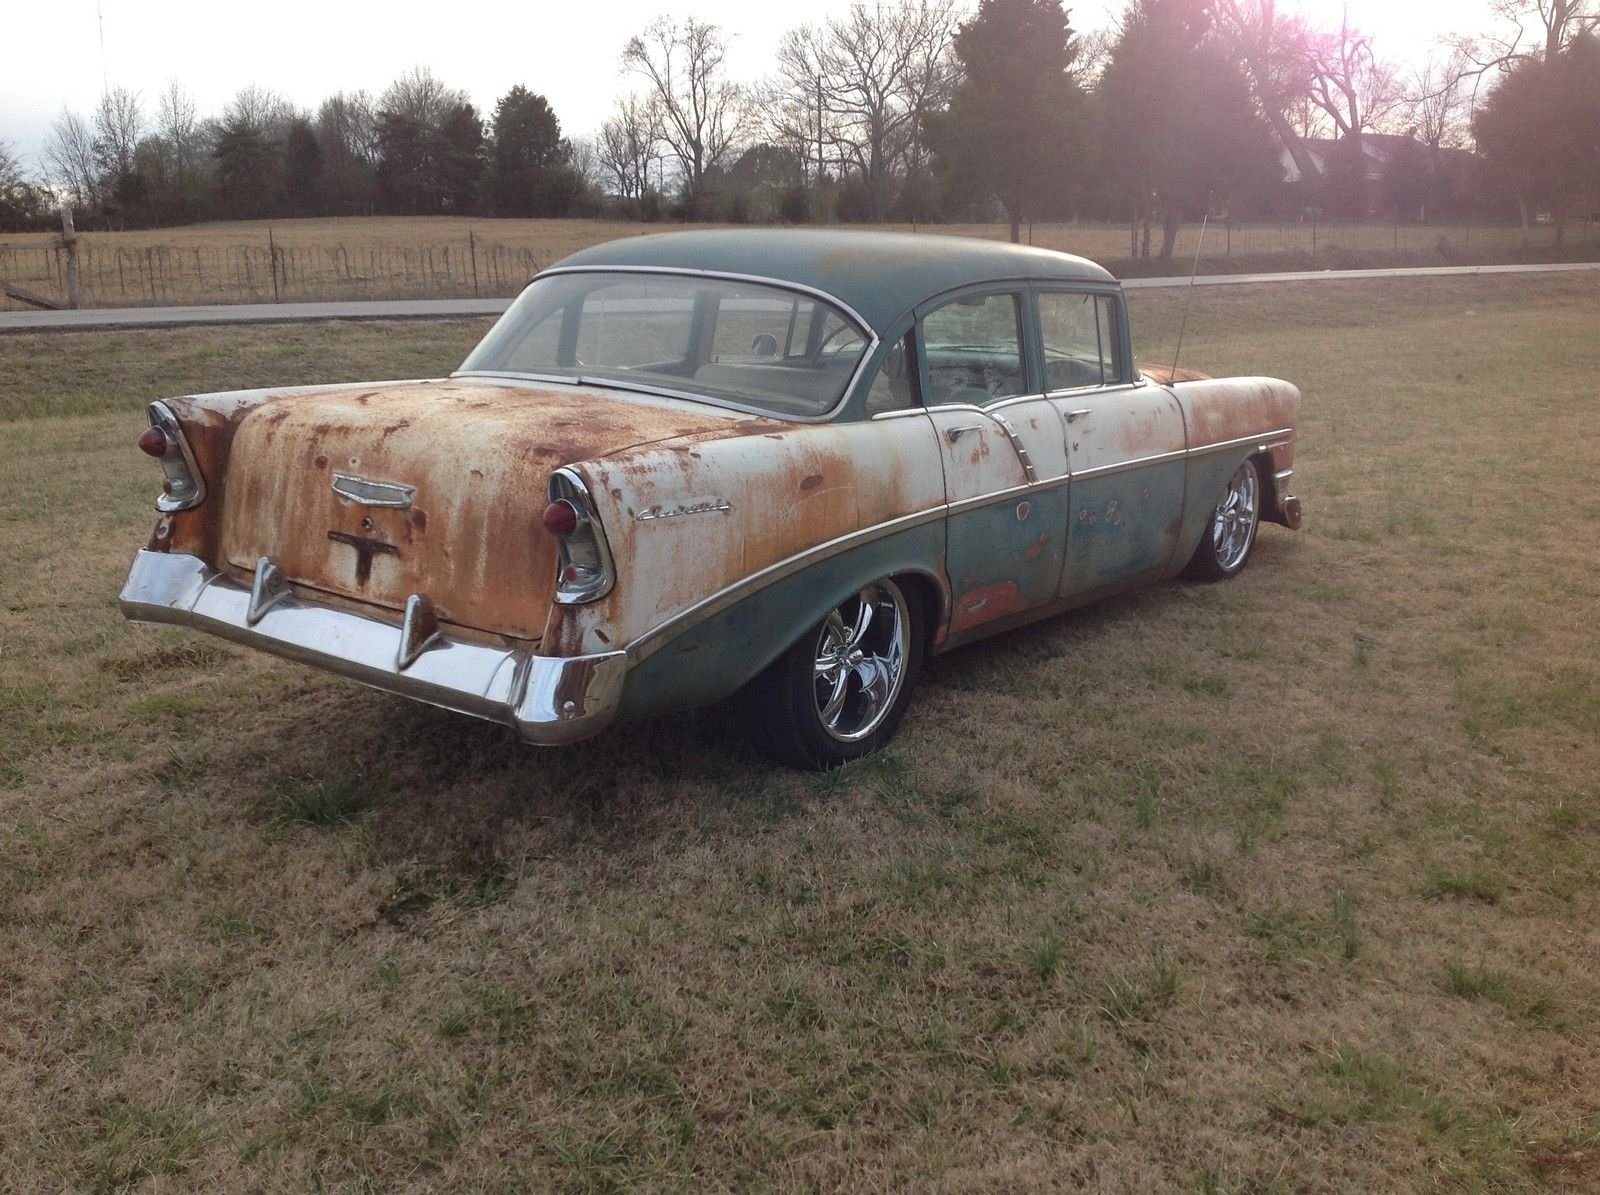 1956 Chevrolet Bel Air 350 700r No Reserve Rat Rod Surf